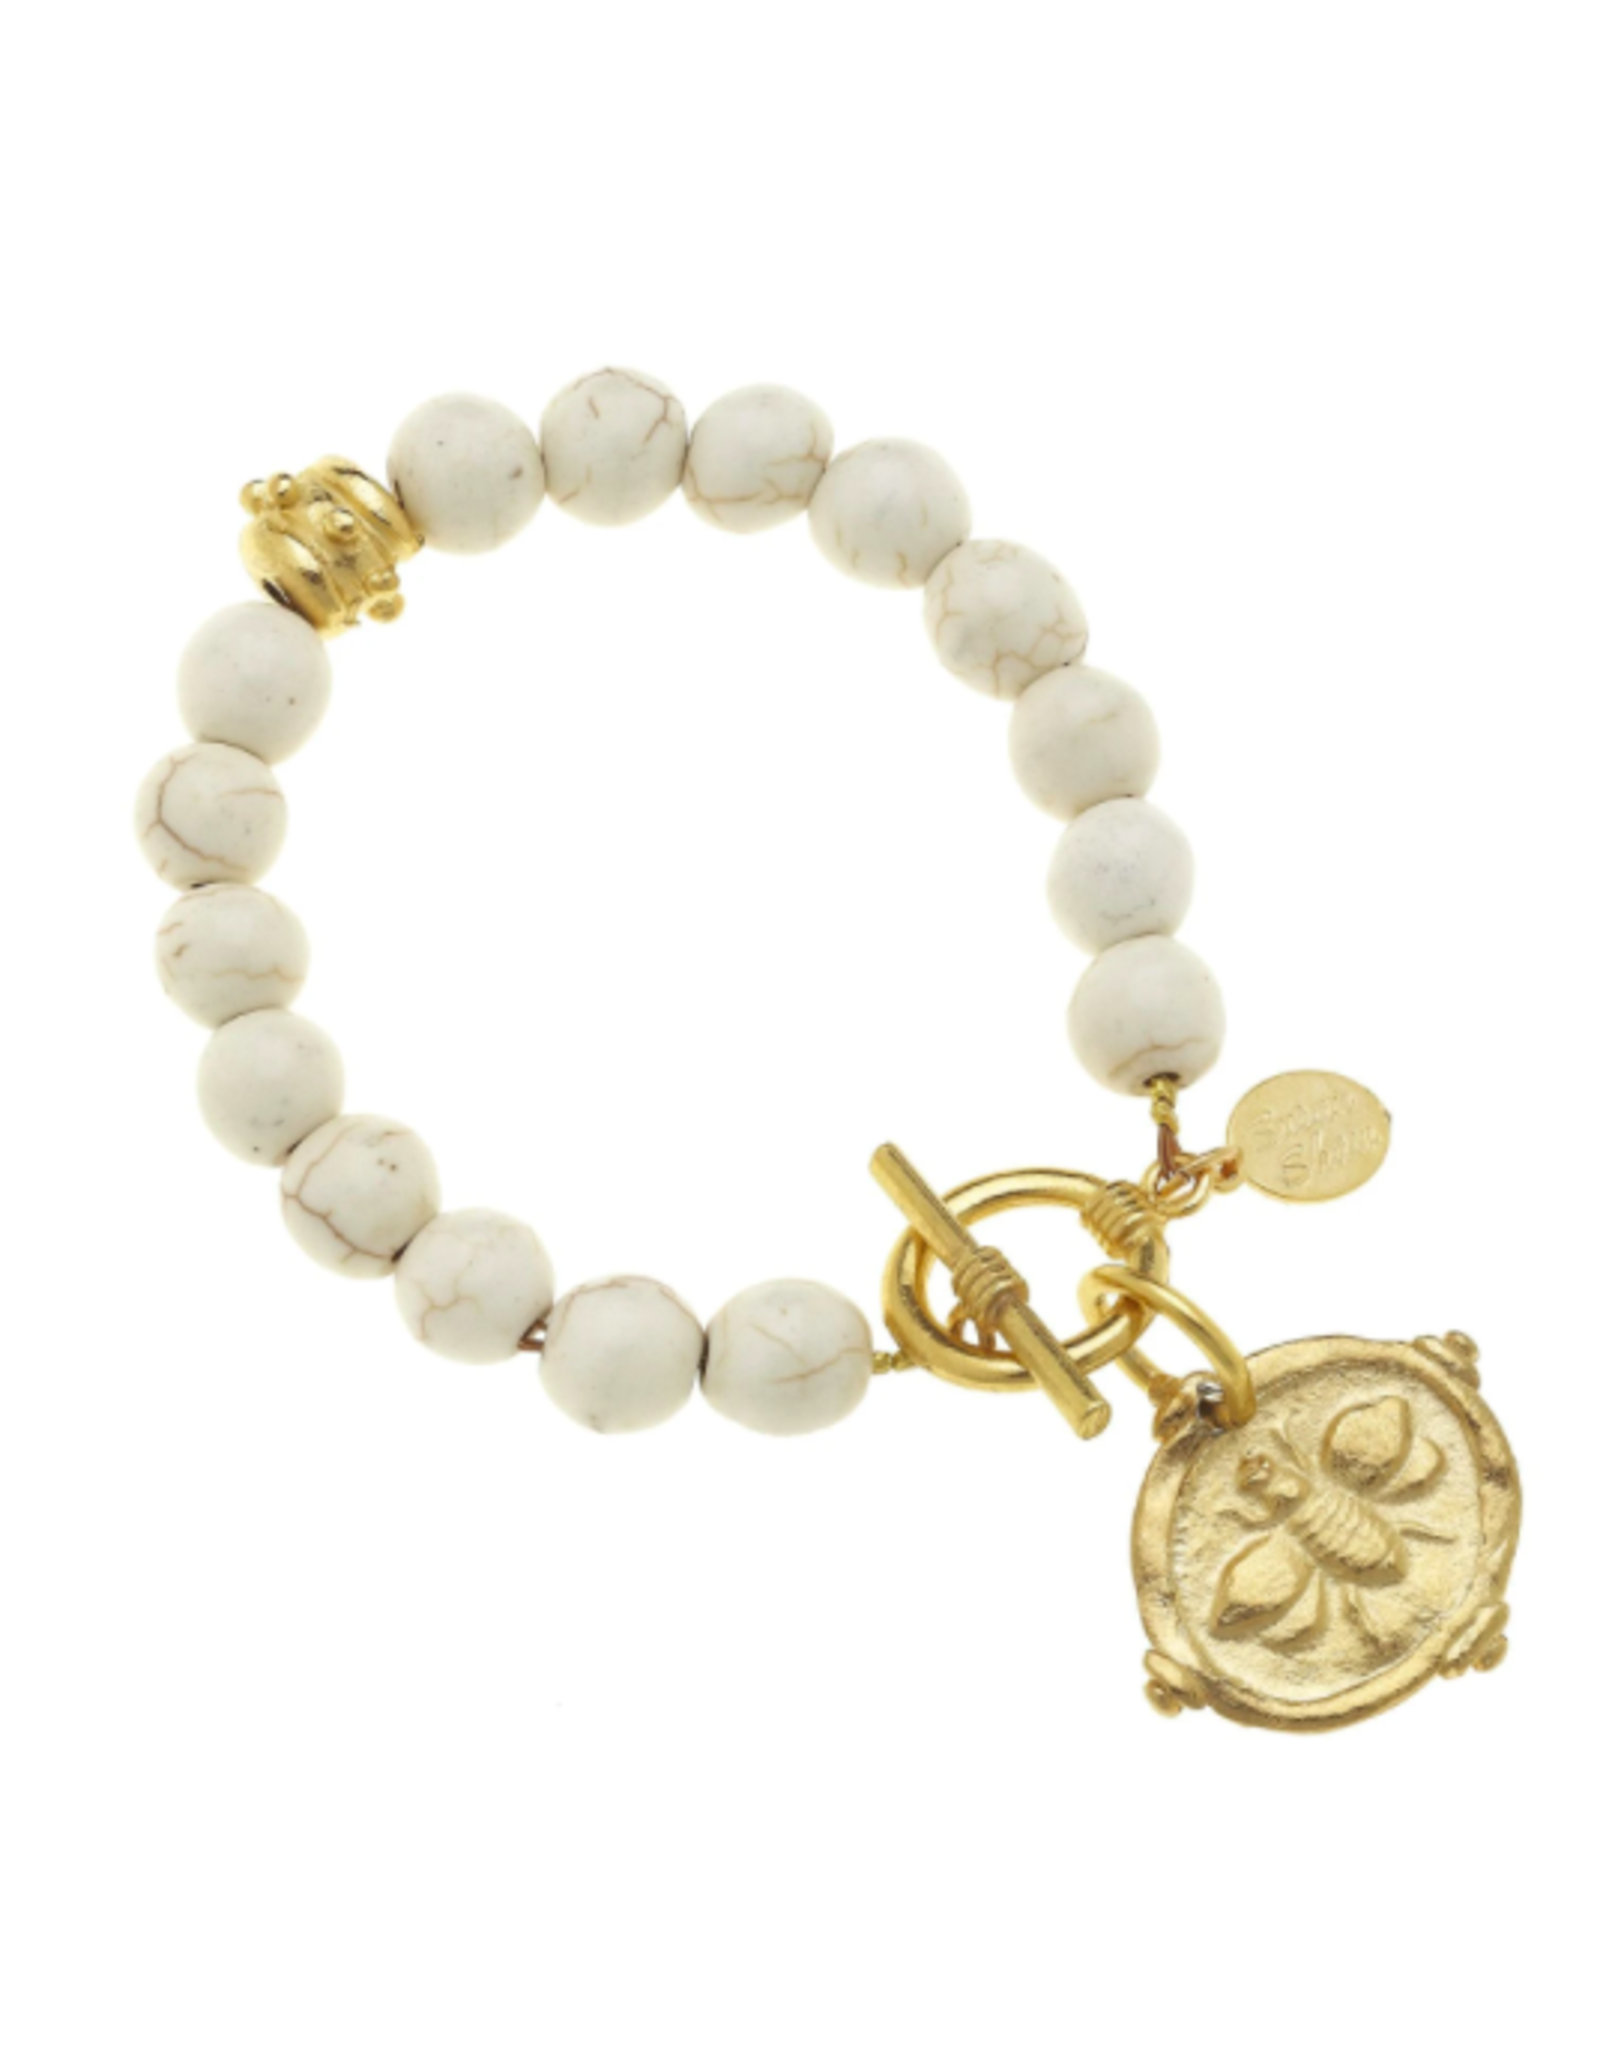 Susan Shaw Gold Bee Intaglio in White Turquoise Stone Bracelet by Susan Shaw